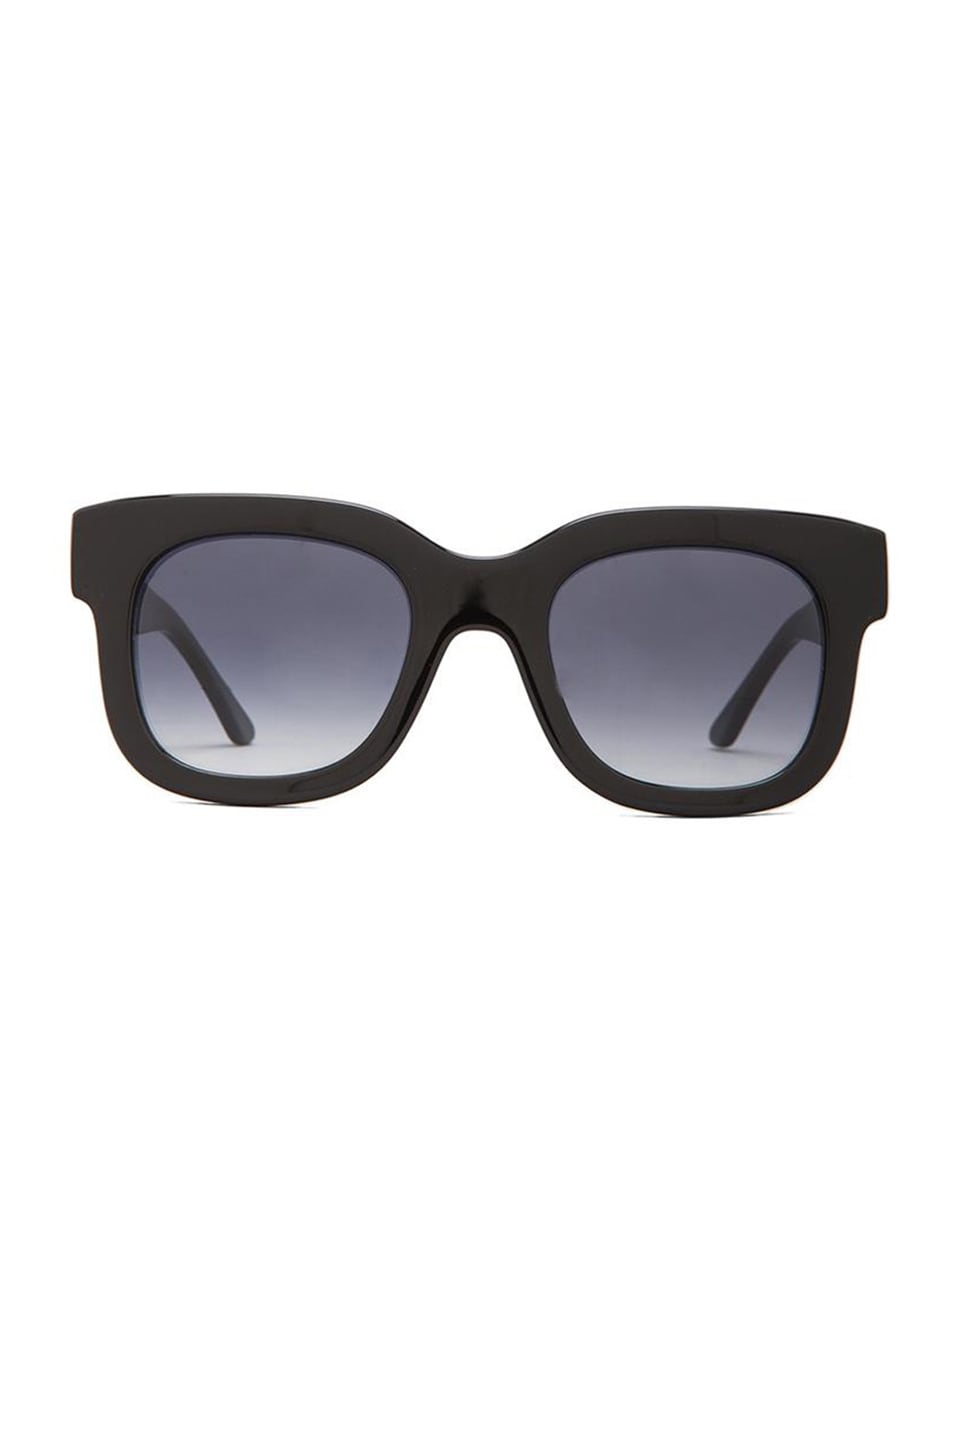 Thierry Lasry Dominaty Sunglasses in Solid Black